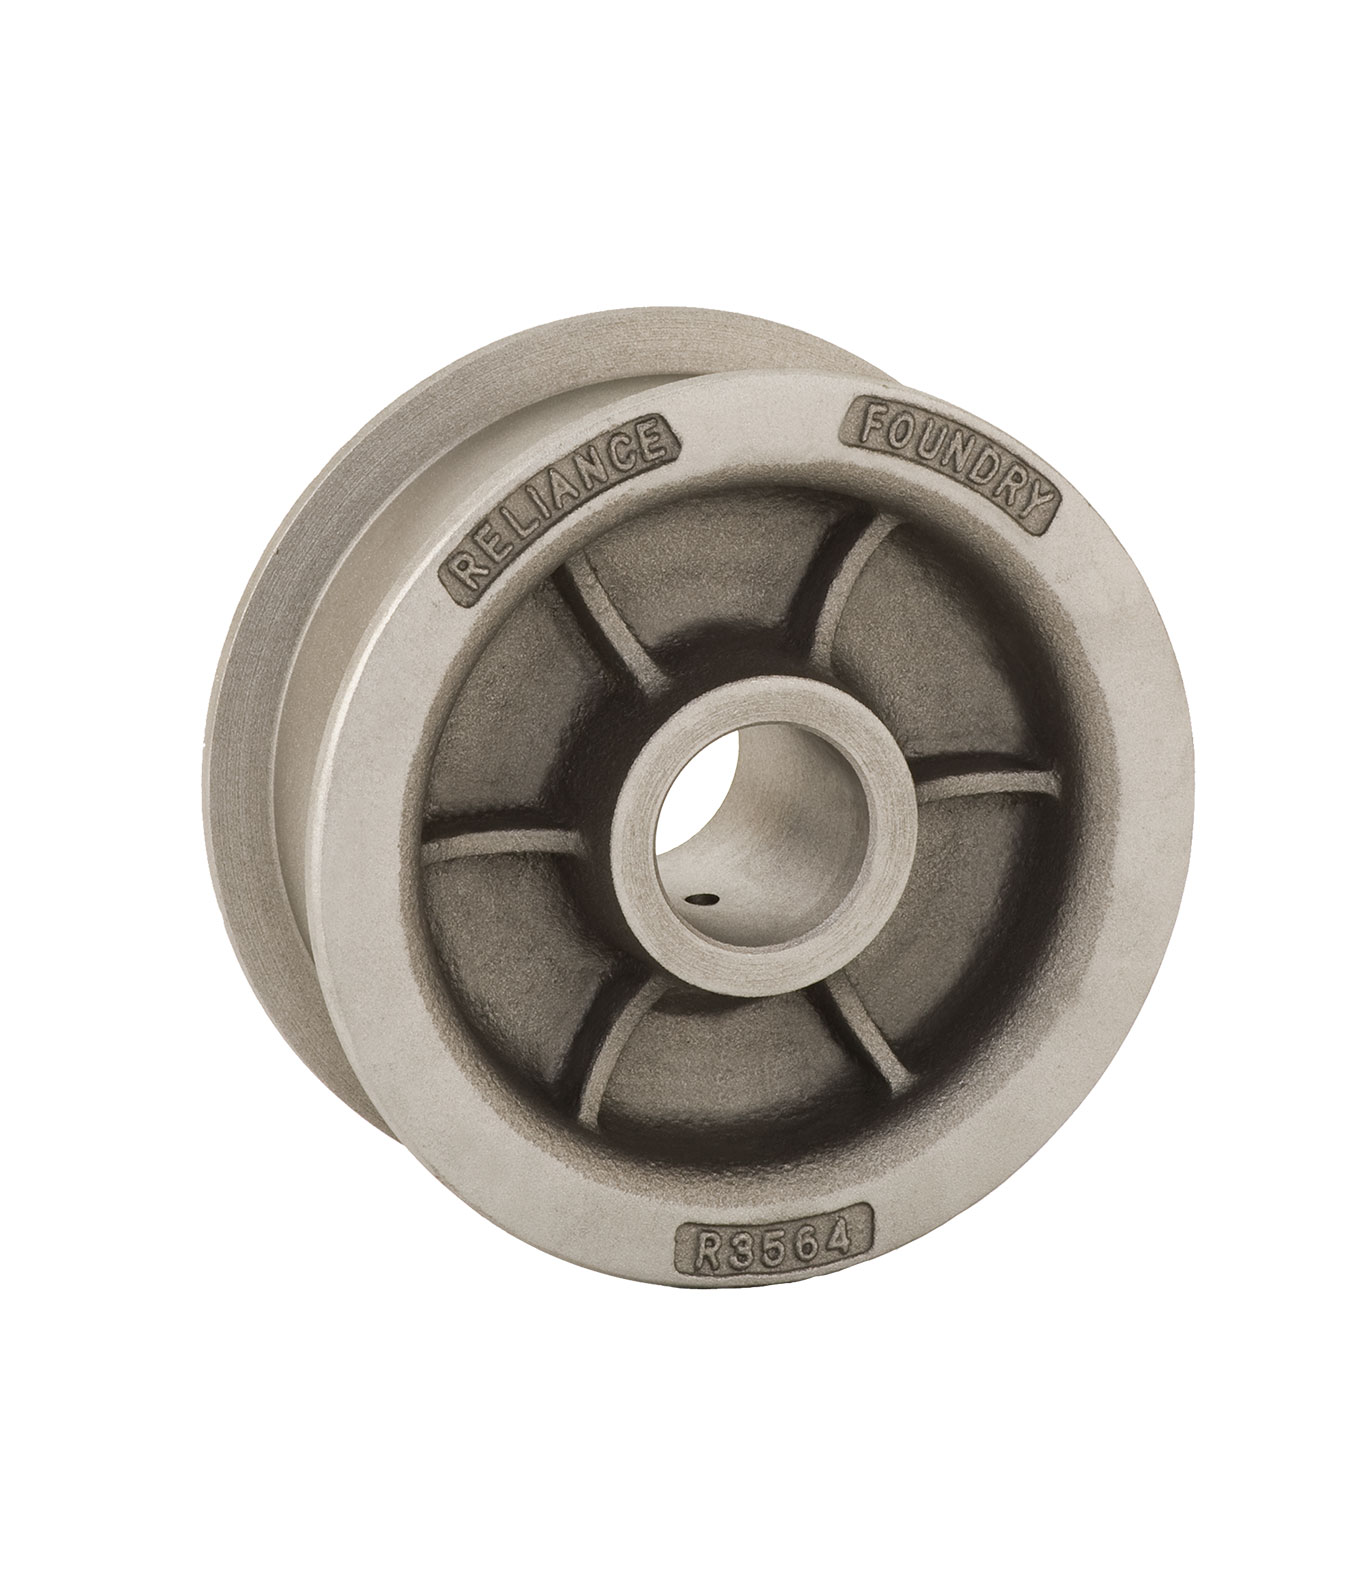 R-3564 Double Flanged Wheel